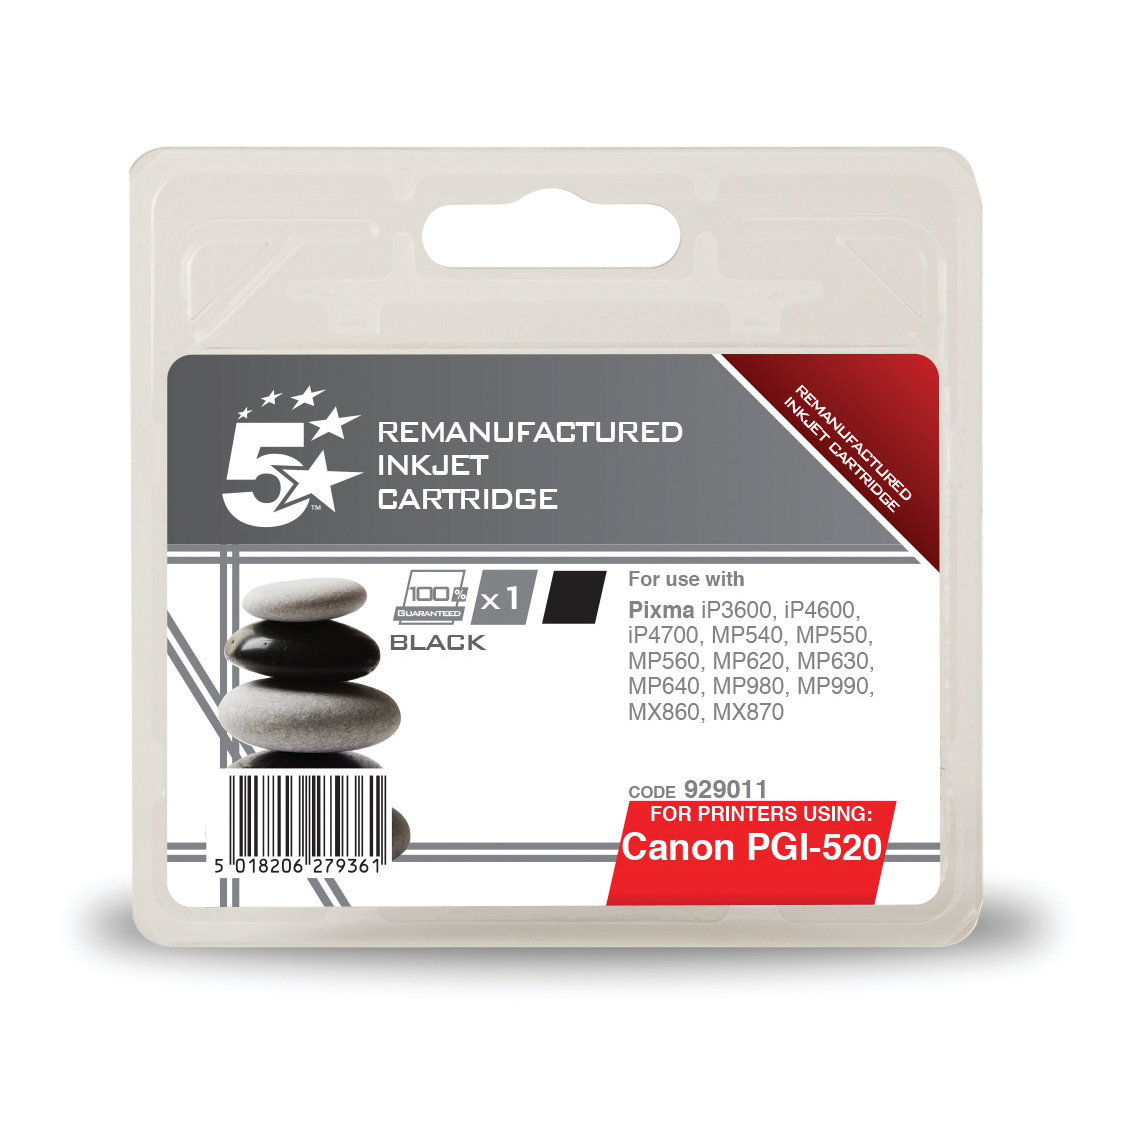 Inkjet Cartridges 5 Star Office Remanufactured Inkjet Cartridge Page Life 350pp Black 19ml Canon PGI-520BK Alternative